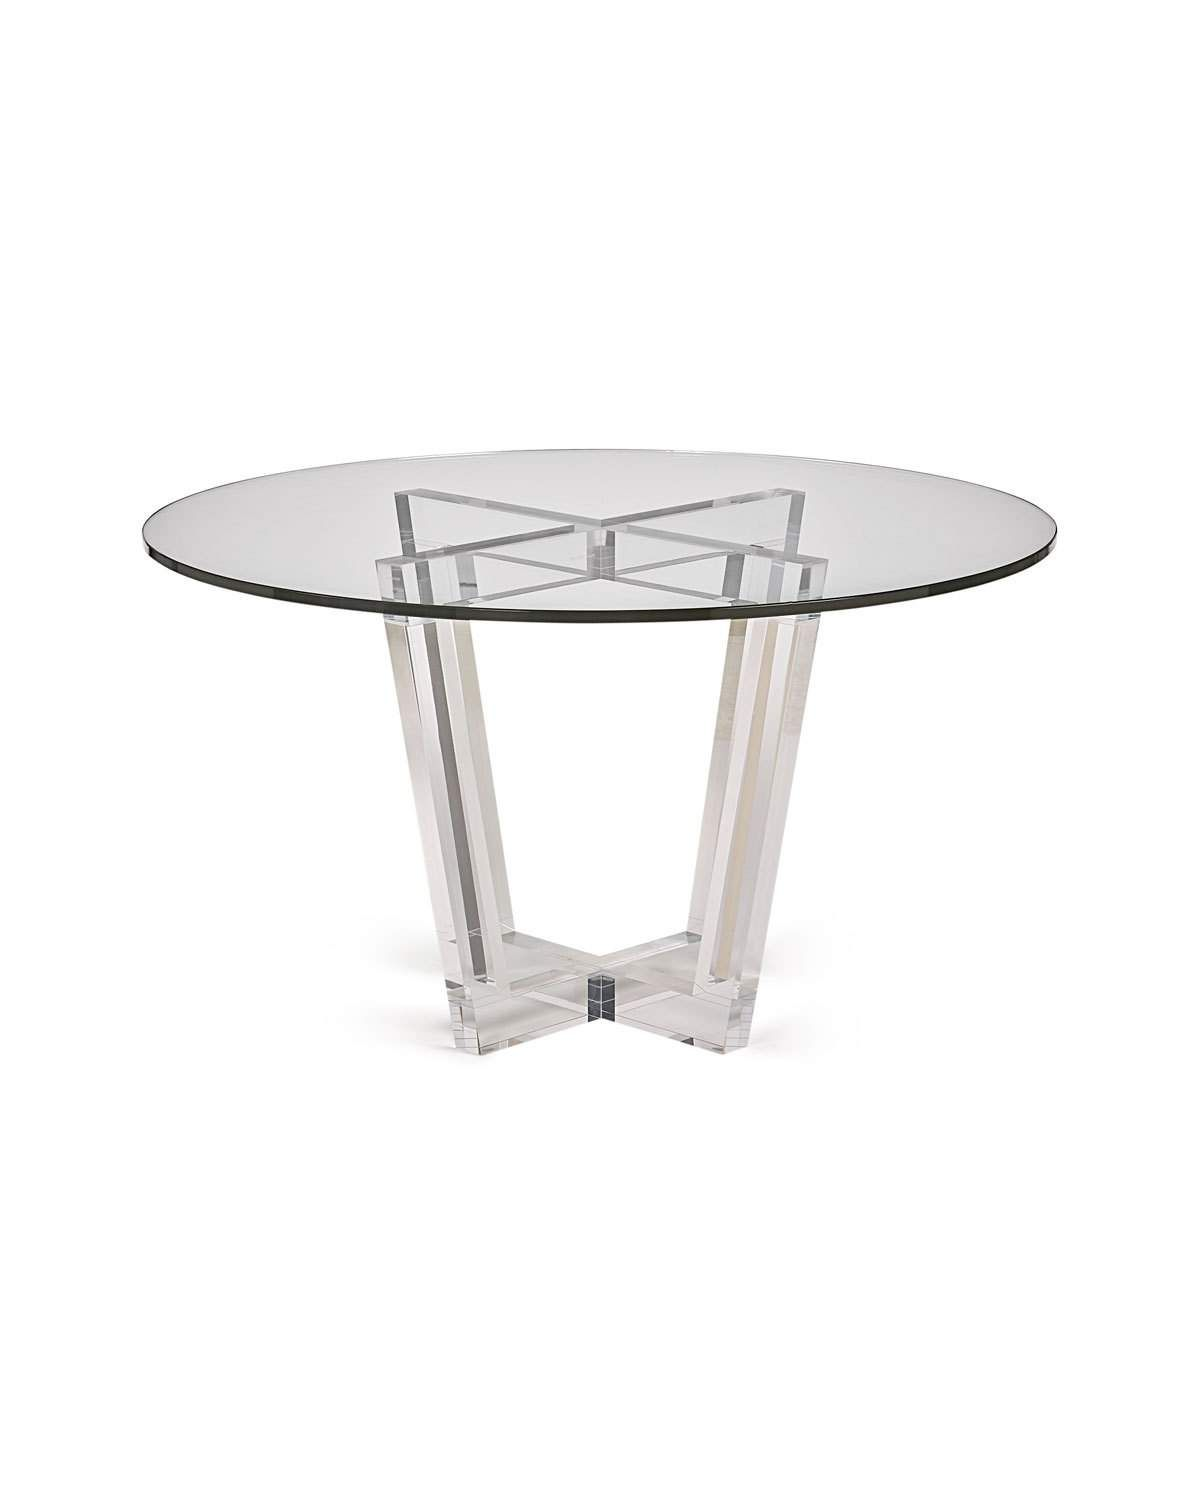 Interlude Home Lovey Acrylic Round Dining Table Round Dining